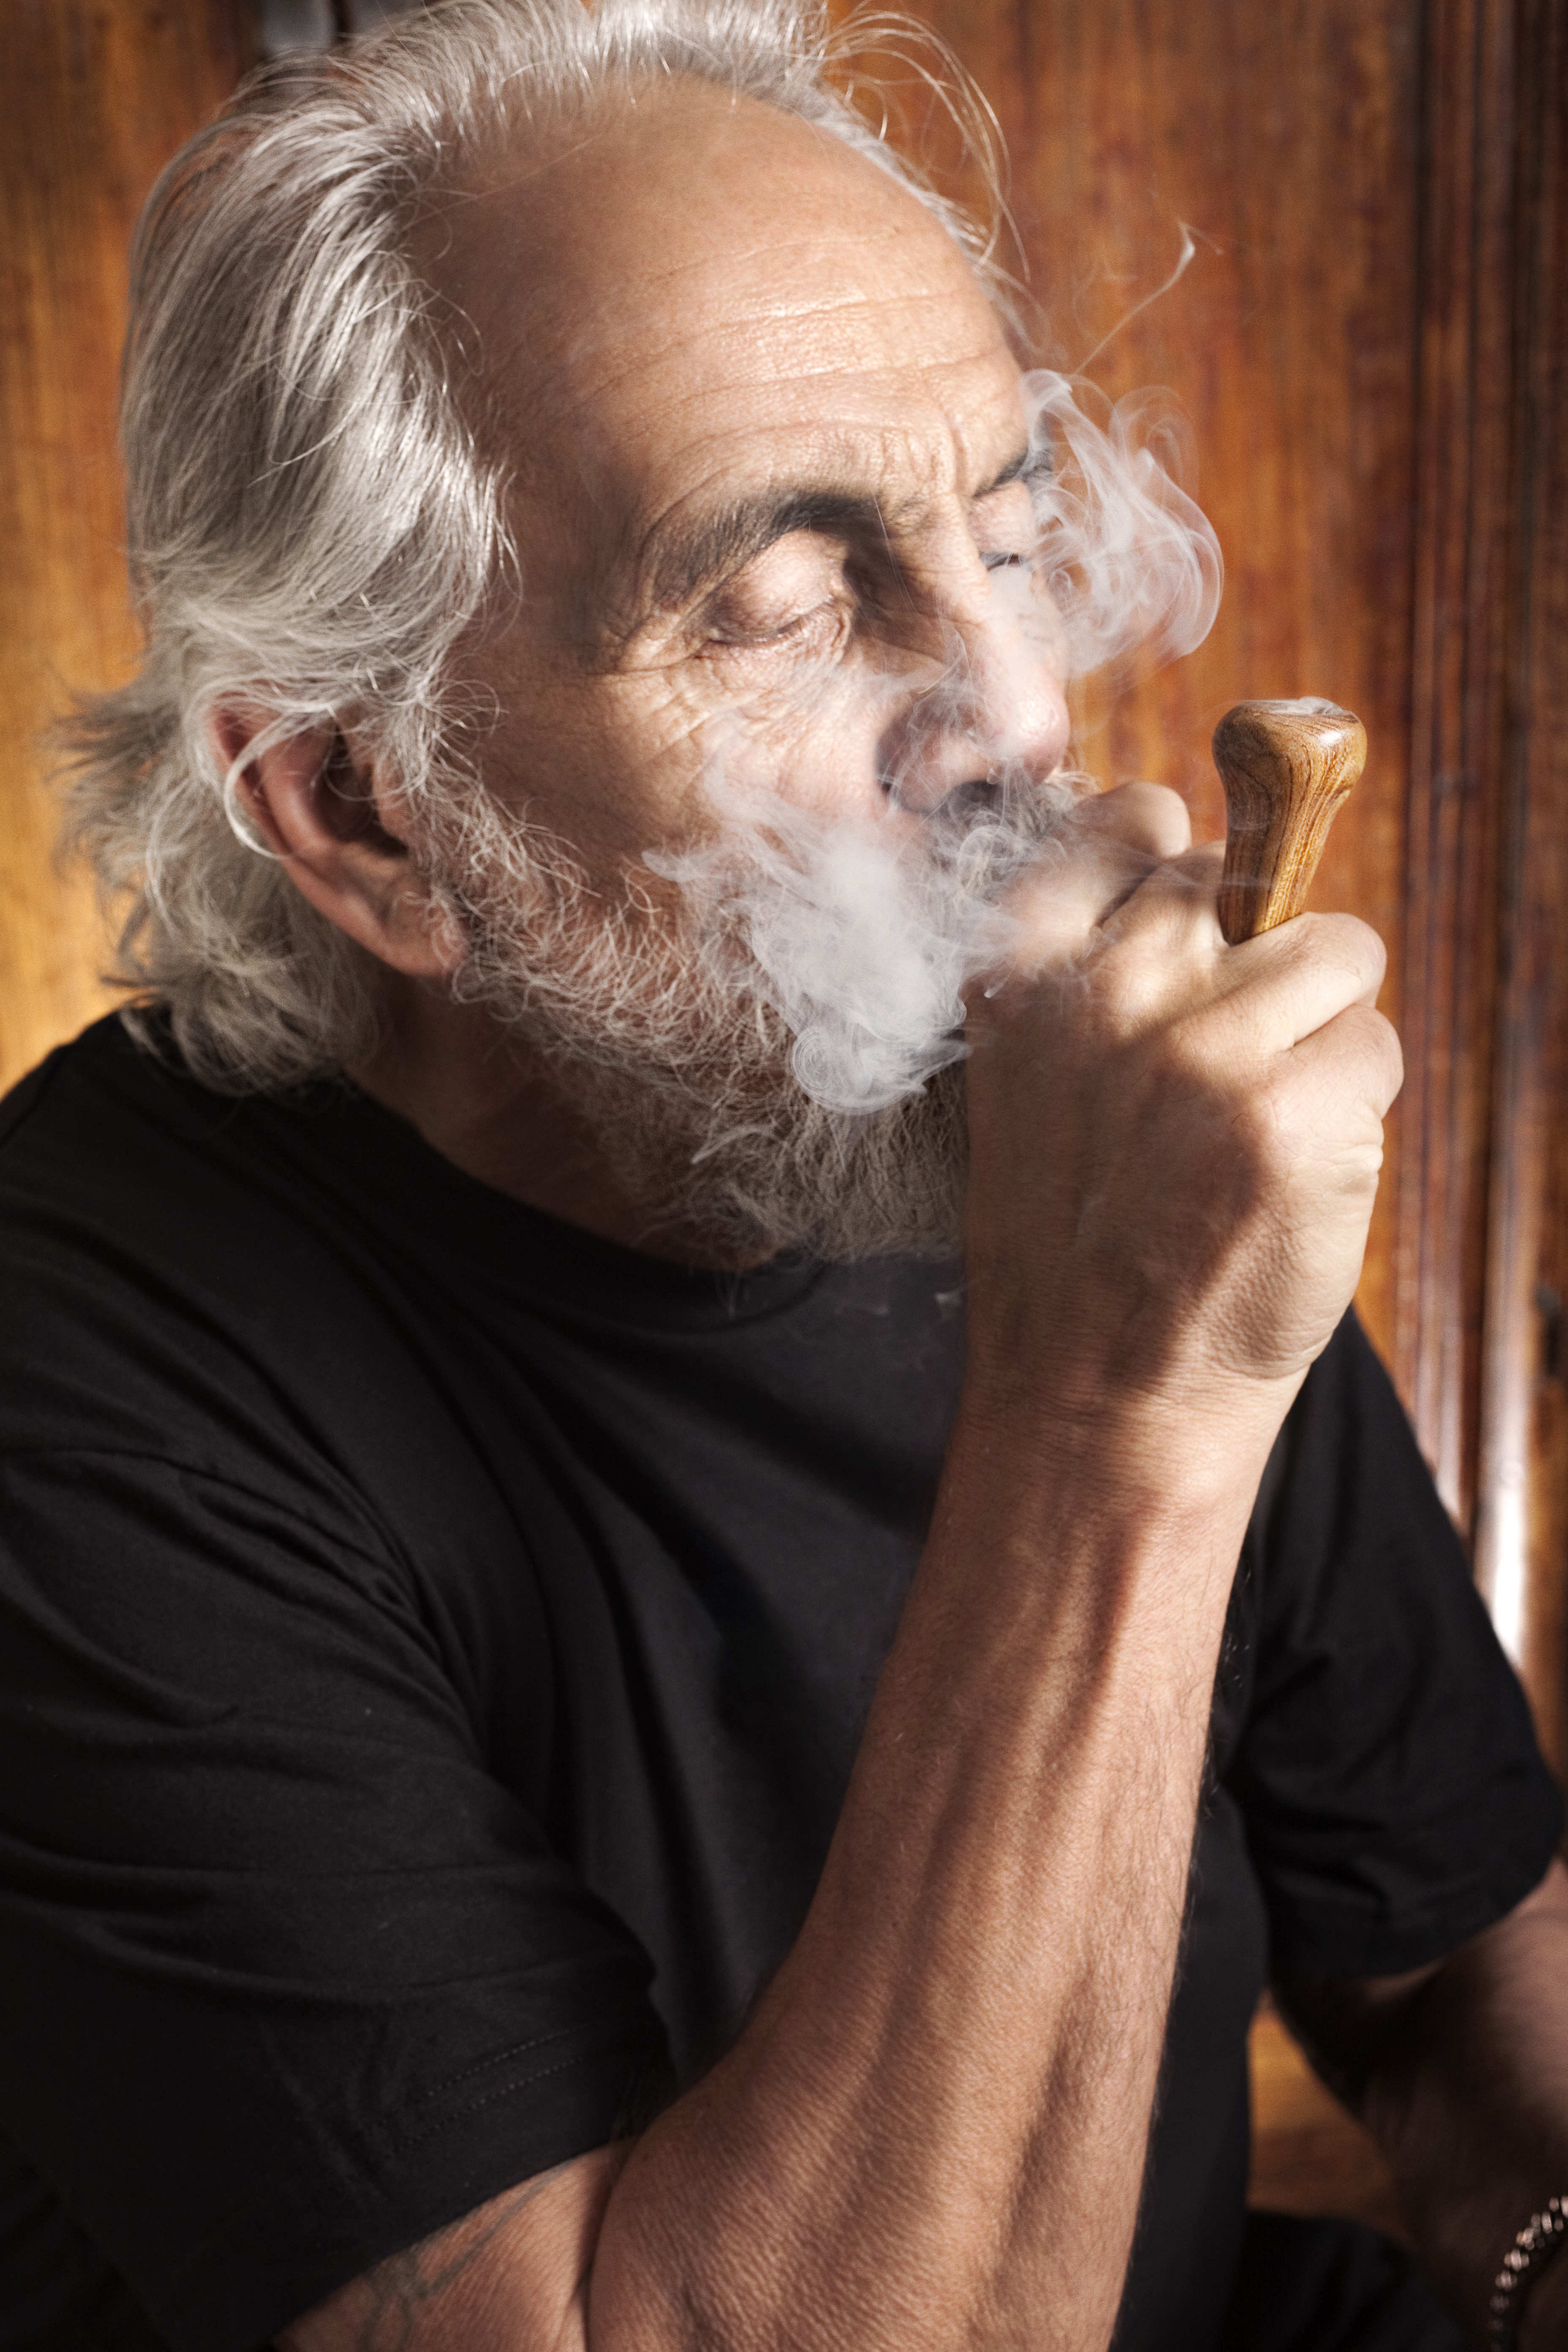 Avatar of Tommy Chong